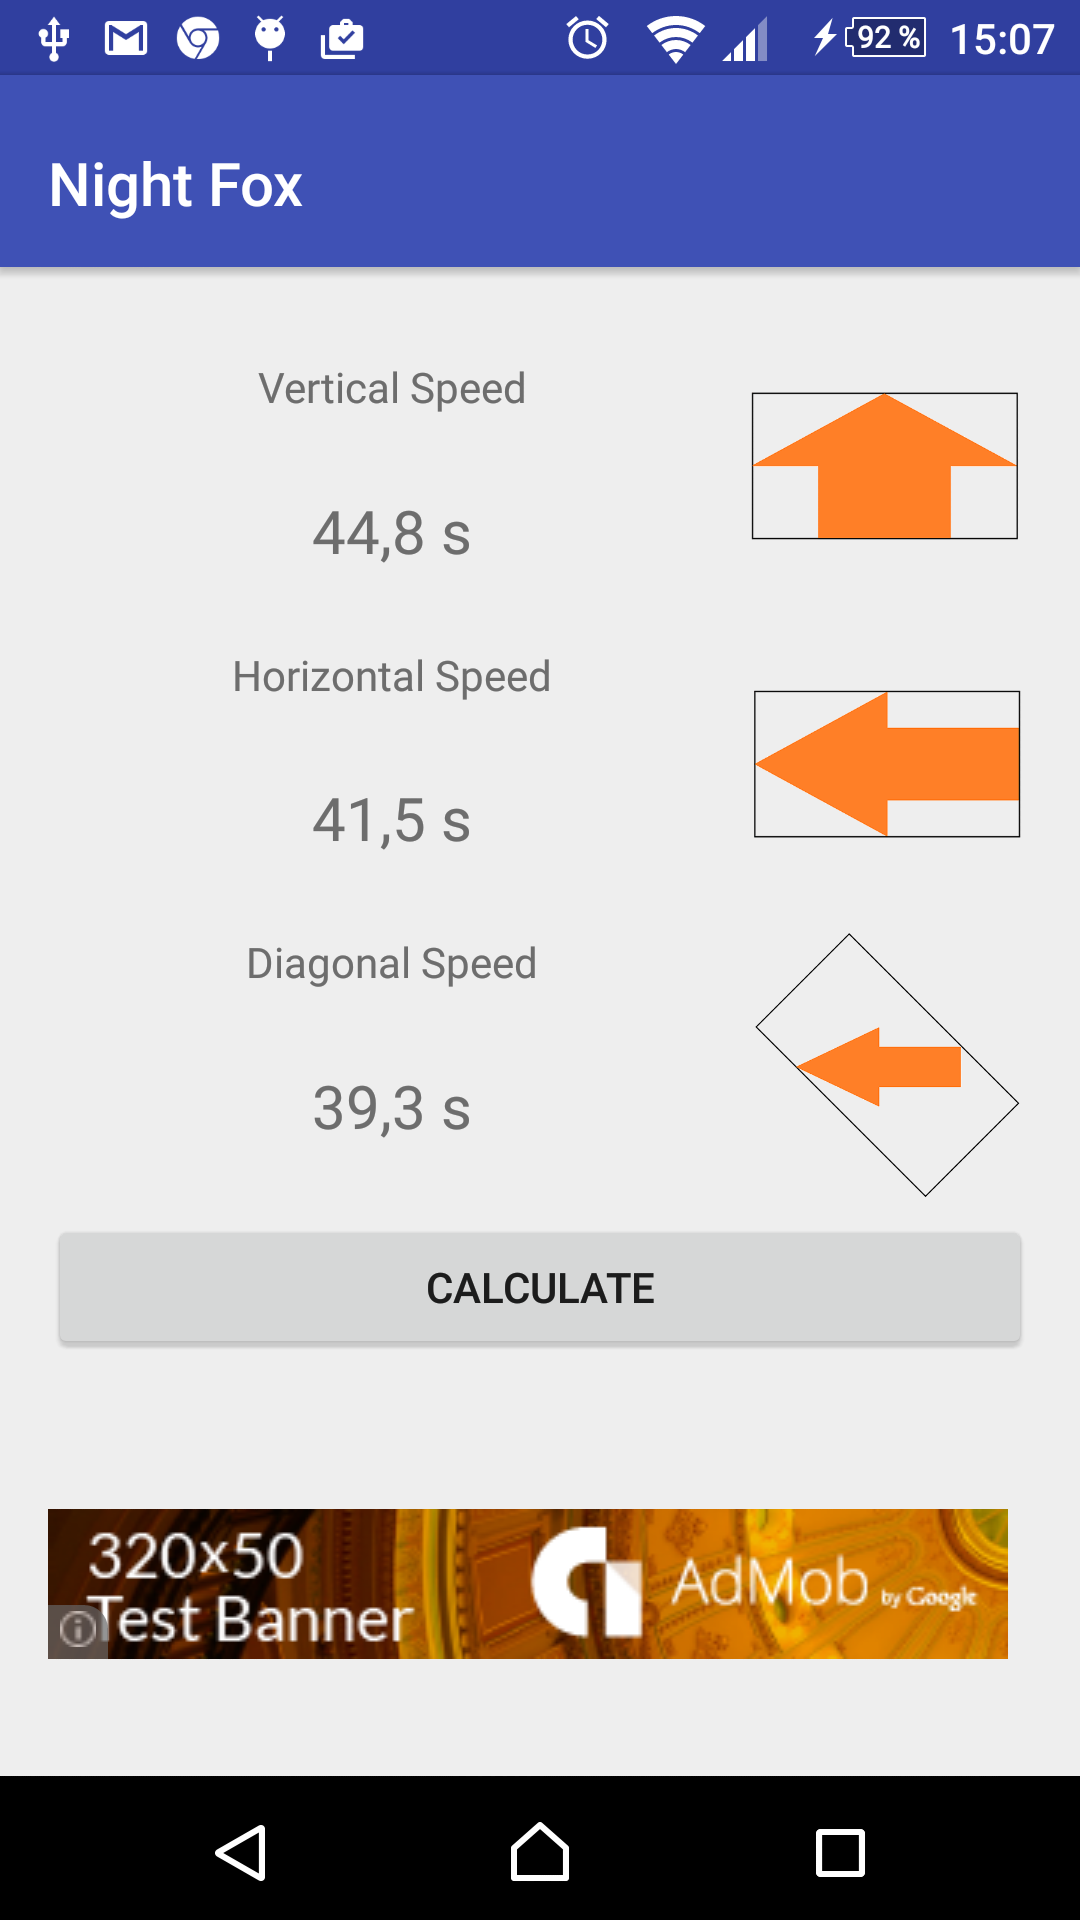 Night Fox – Night Sky Photography Shutter Speed Calculator Android